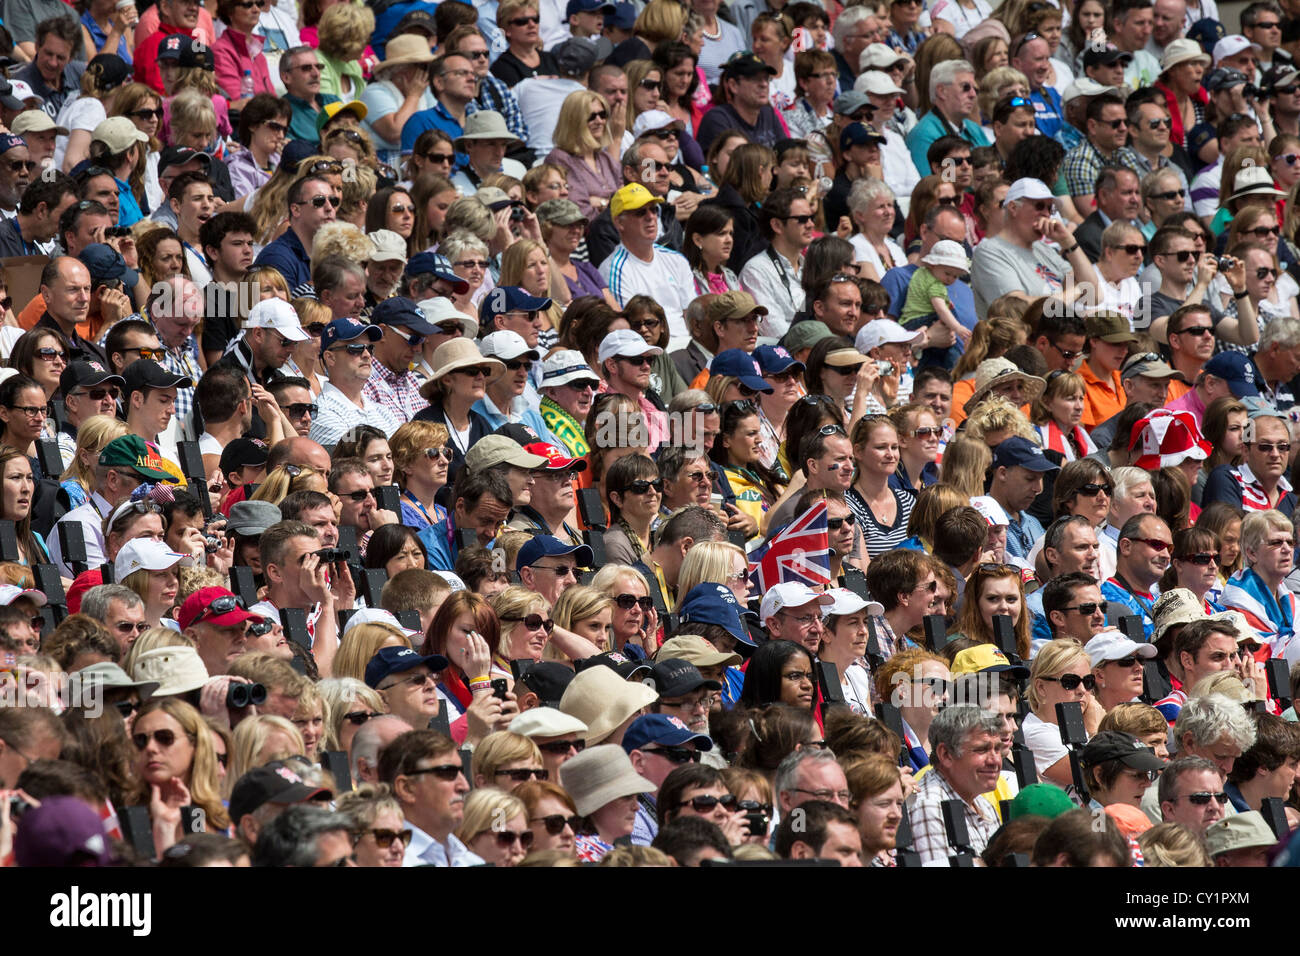 British fans watching athletics at the Olympic Summer Games, London 2012 - Stock Image